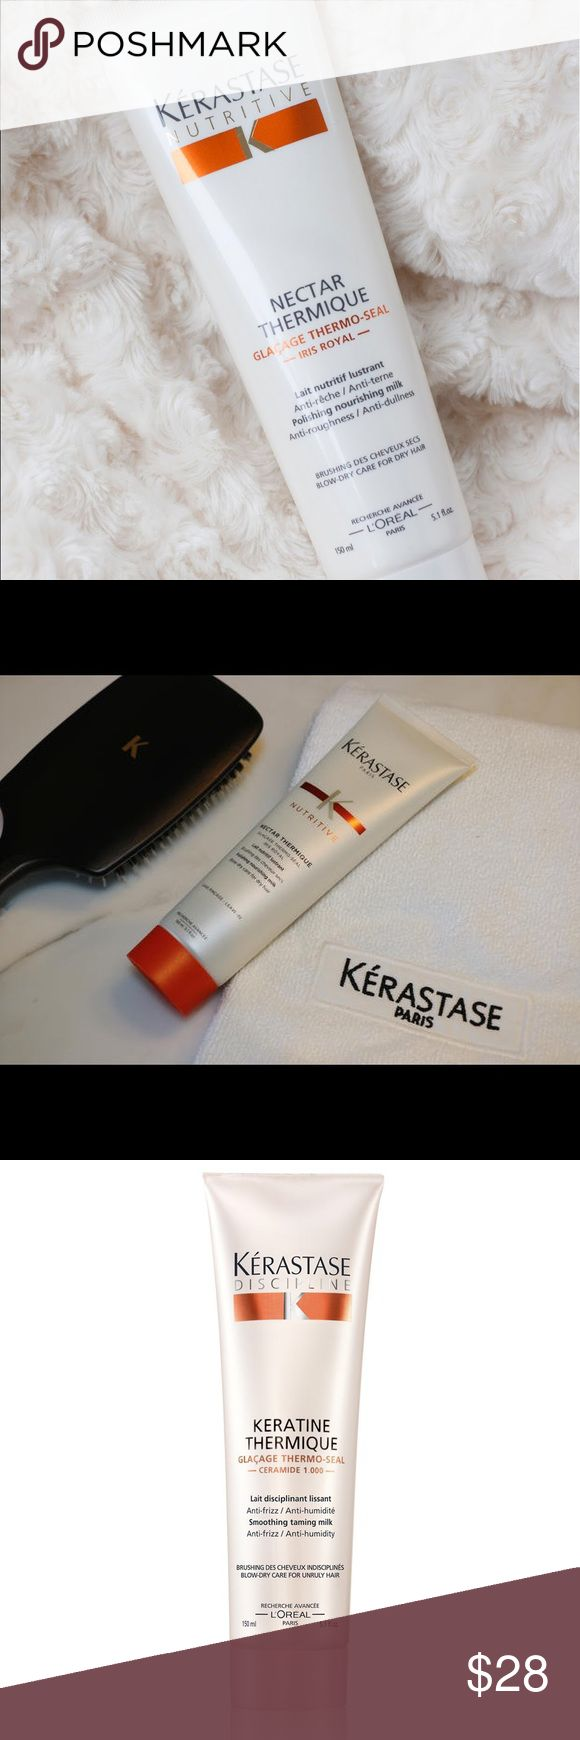 🔥SALE🔥Kerastase Thermique Protects hair from the harmful effects of heat-styling tools. Nourishes, softens and moisturizes hair. Gives hair optimal shine from roots to ends. Improves hair straightening and drying performance.      BRAND NEW!!!! Kerastase Other